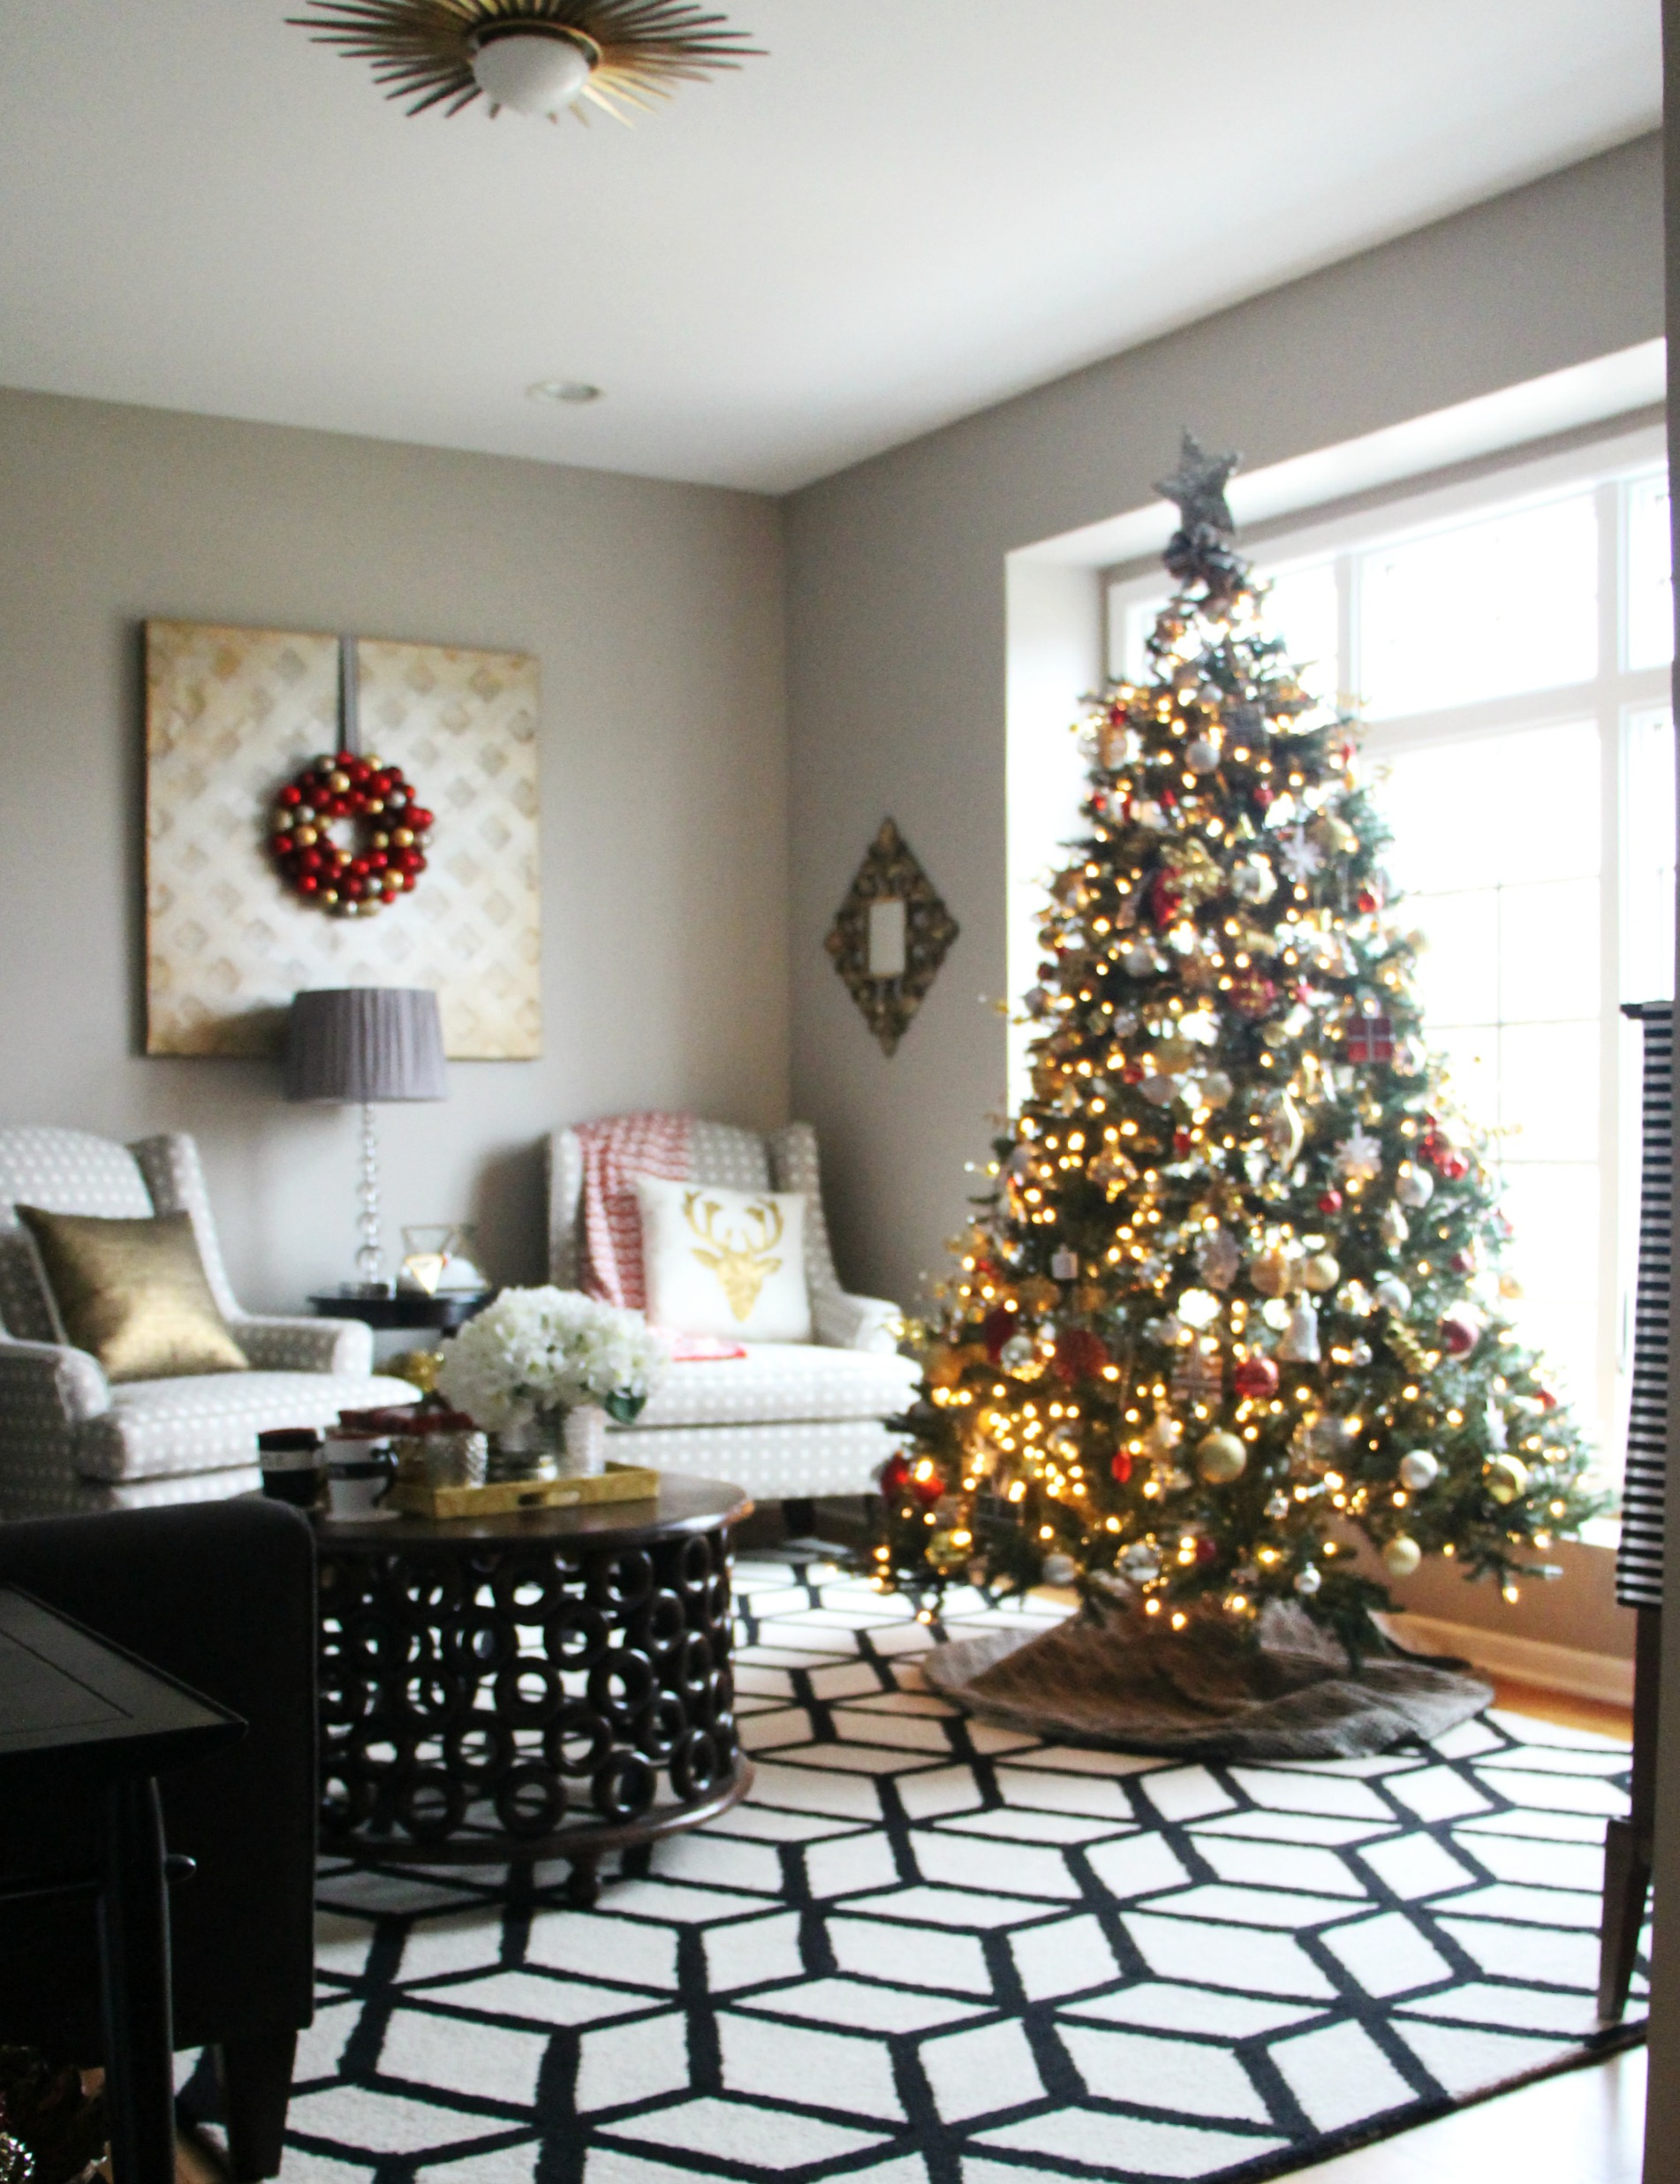 Christmas Tree In Living Room my home style christmas tree edition | bold neutral glam - this is